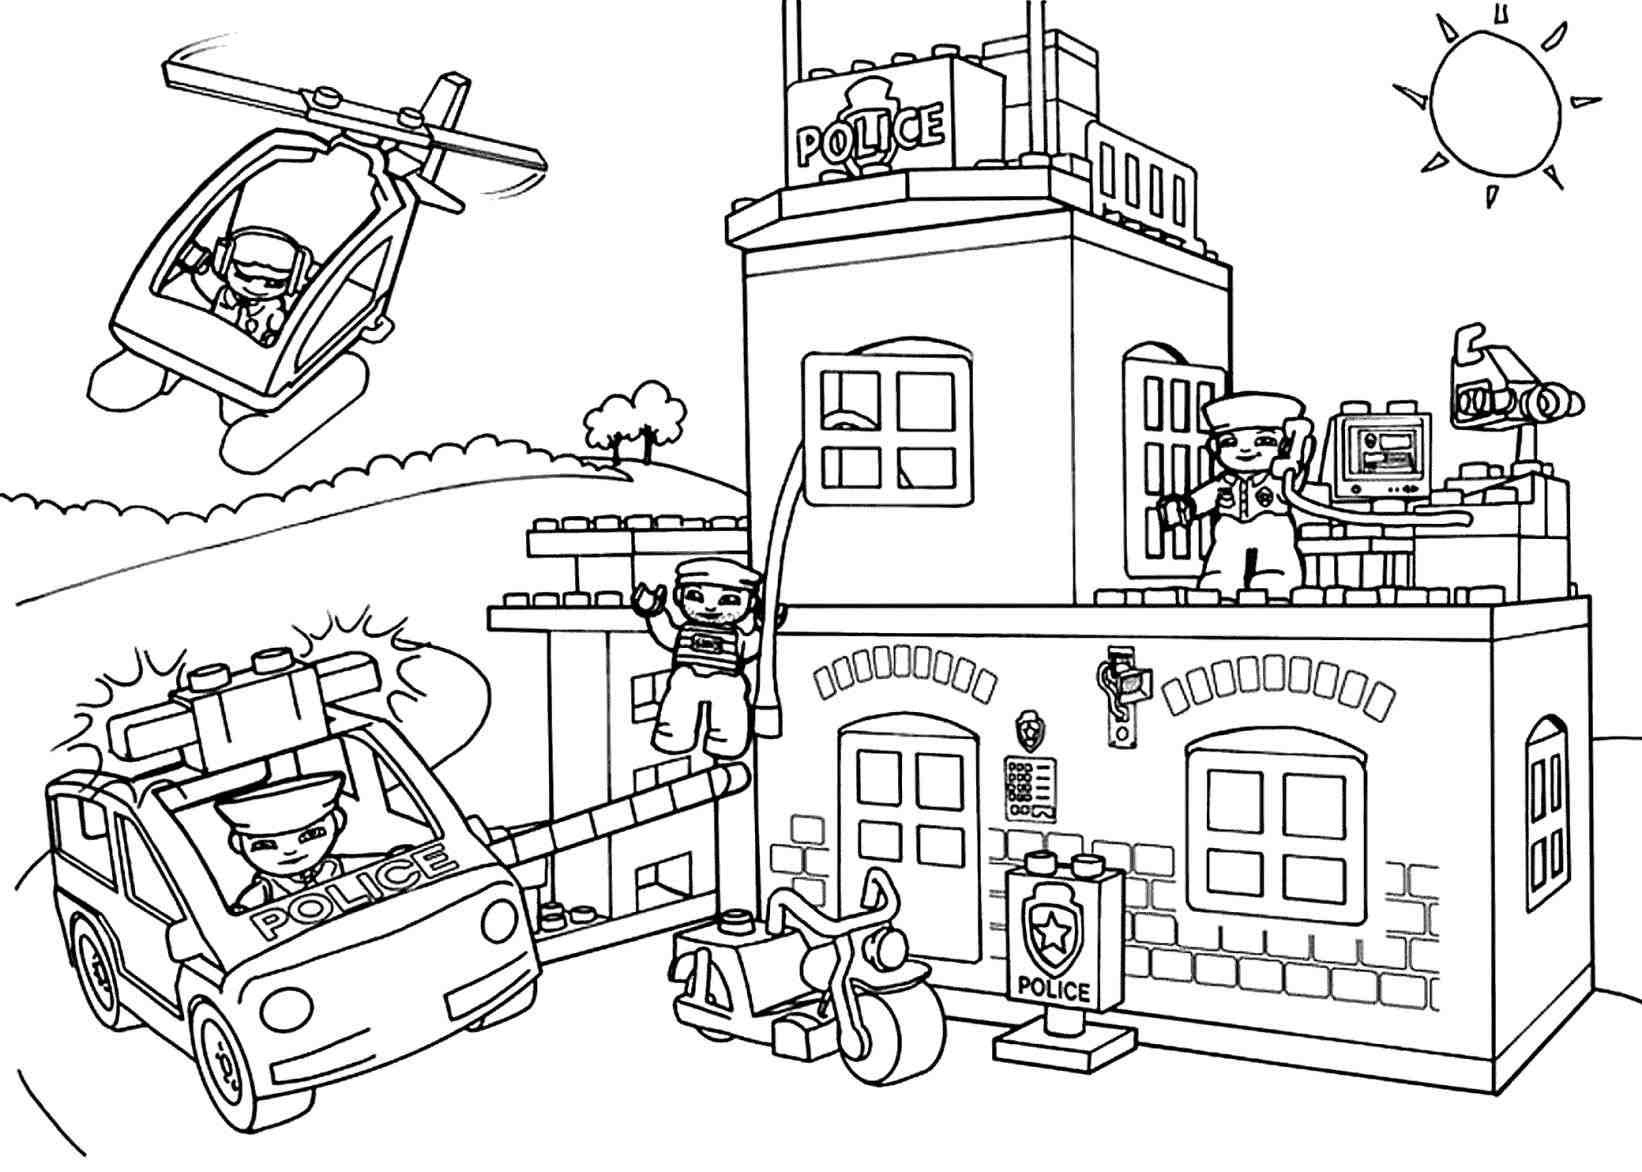 Hospital Coloring Pages Printable to Print 8m - Free For kids